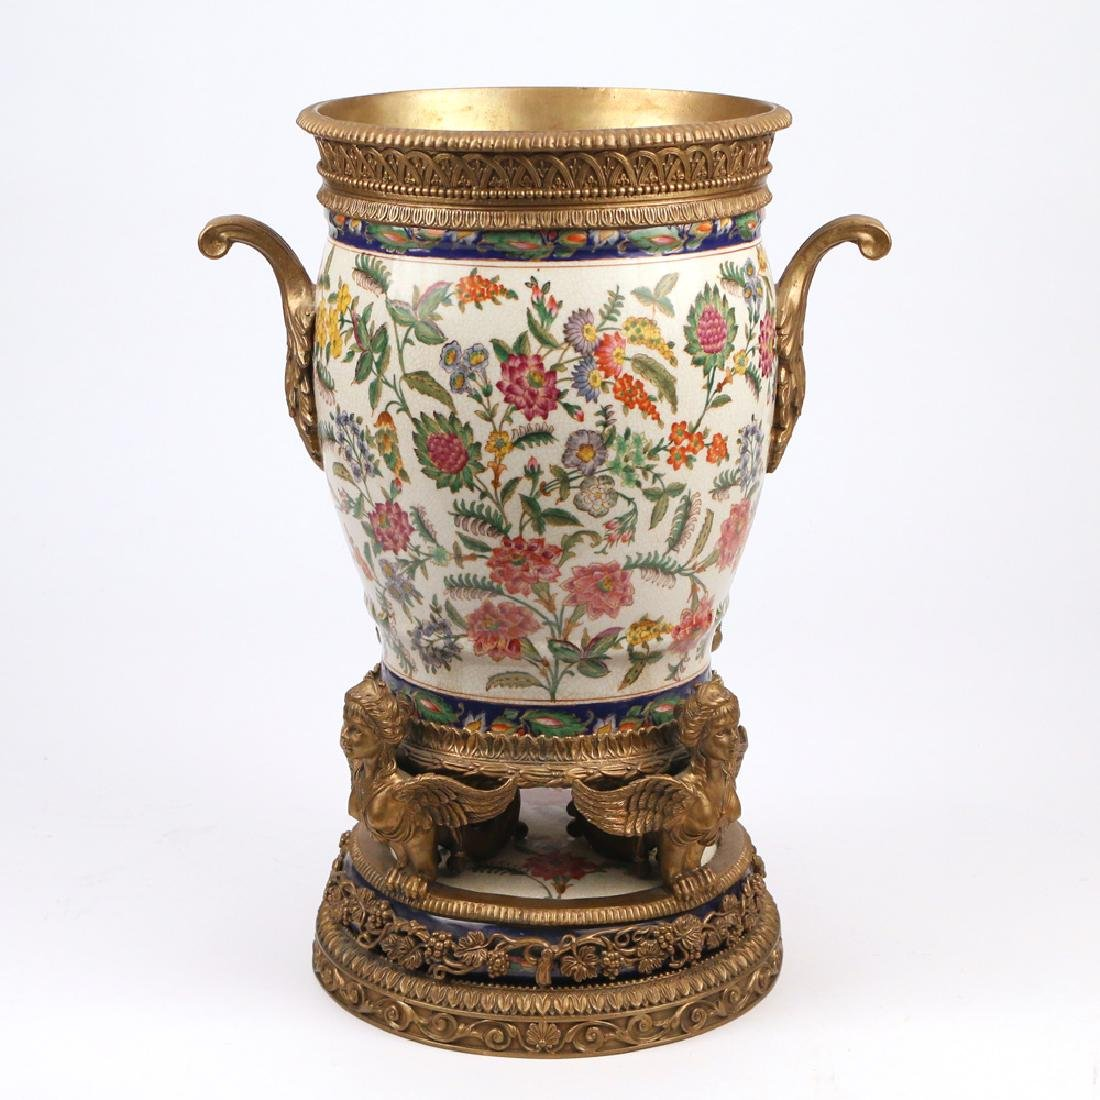 ORMOLU-MOUNTED CERAMIC JARDINIERE